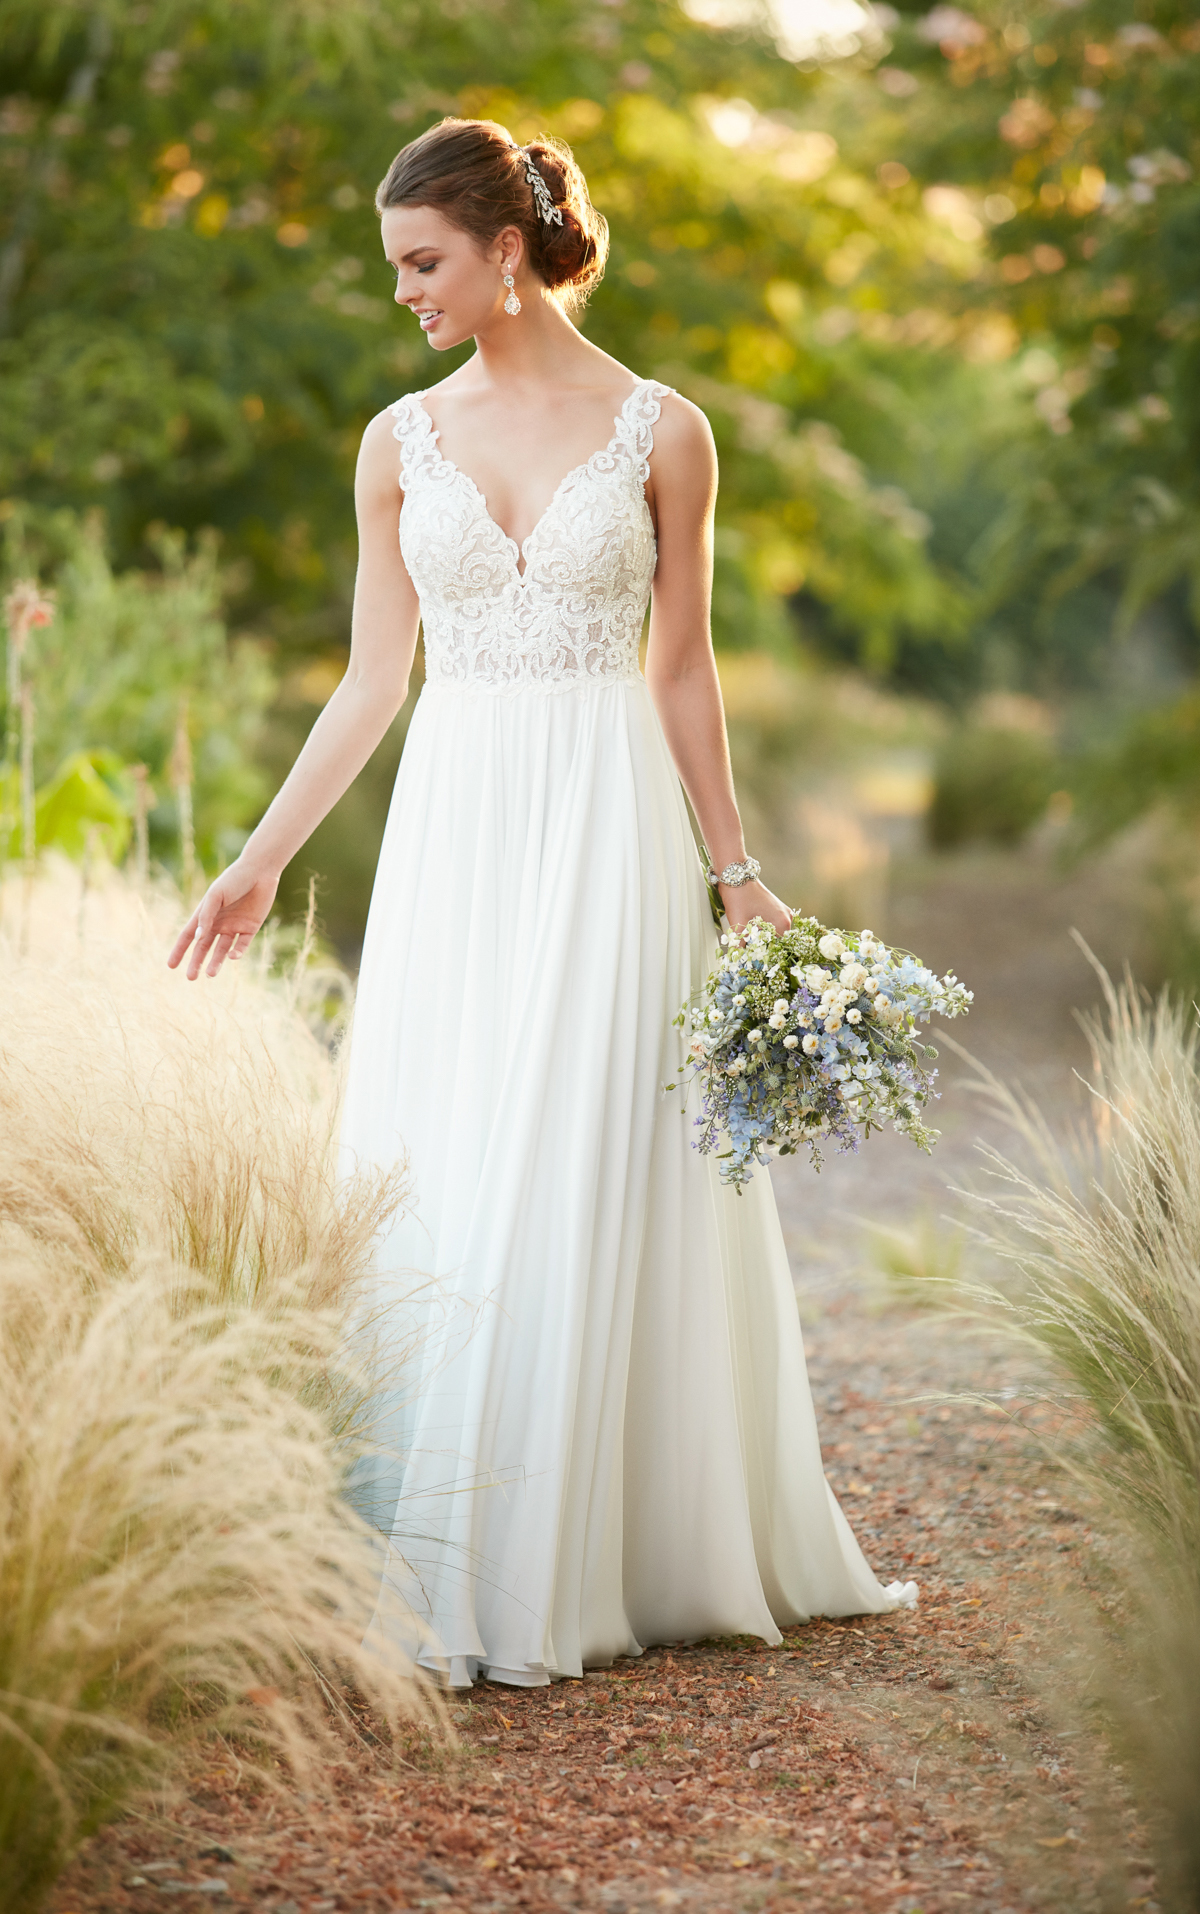 7a6c2bb9b1 Bridal Collections - Laura Jacobs Bridal Fort Myers, Florida